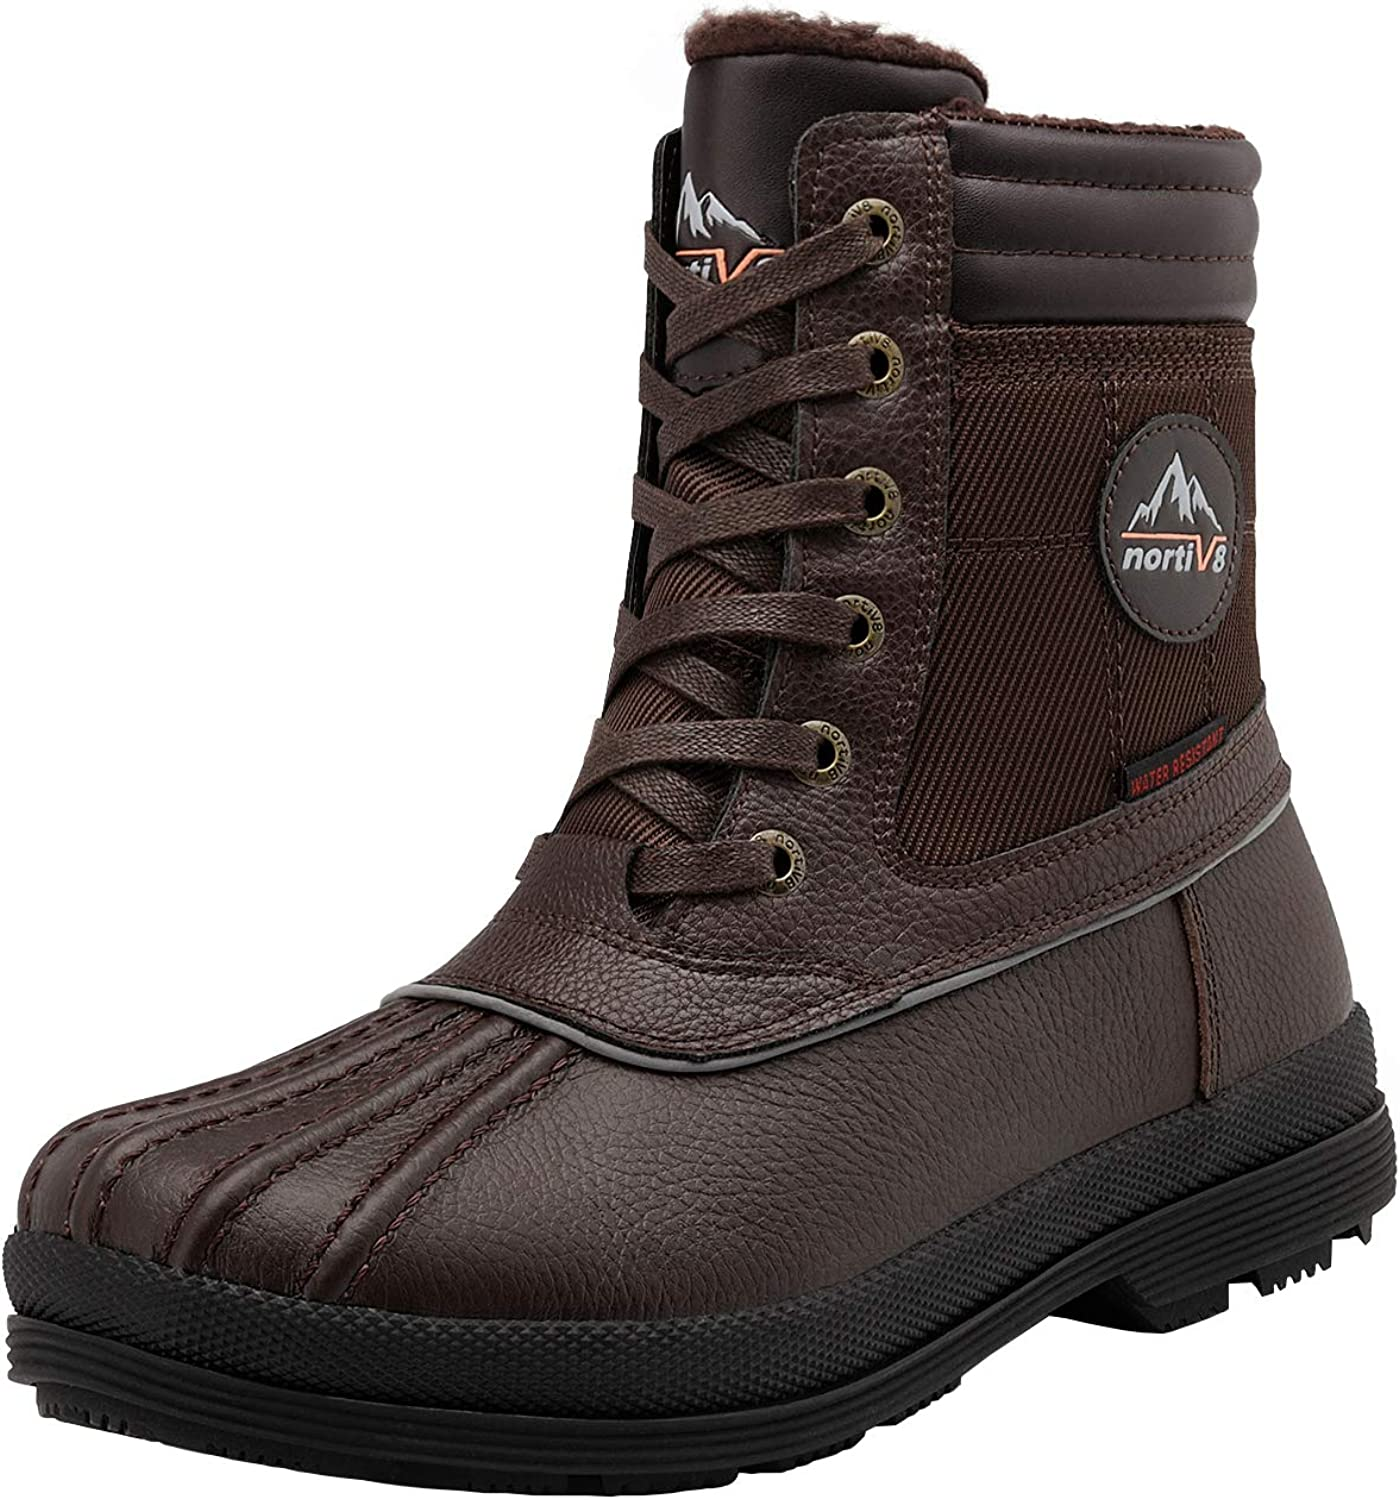 NORTIV 8 Men's Insulated Max 46% OFF Warm Winter Boots Snow Max 58% OFF